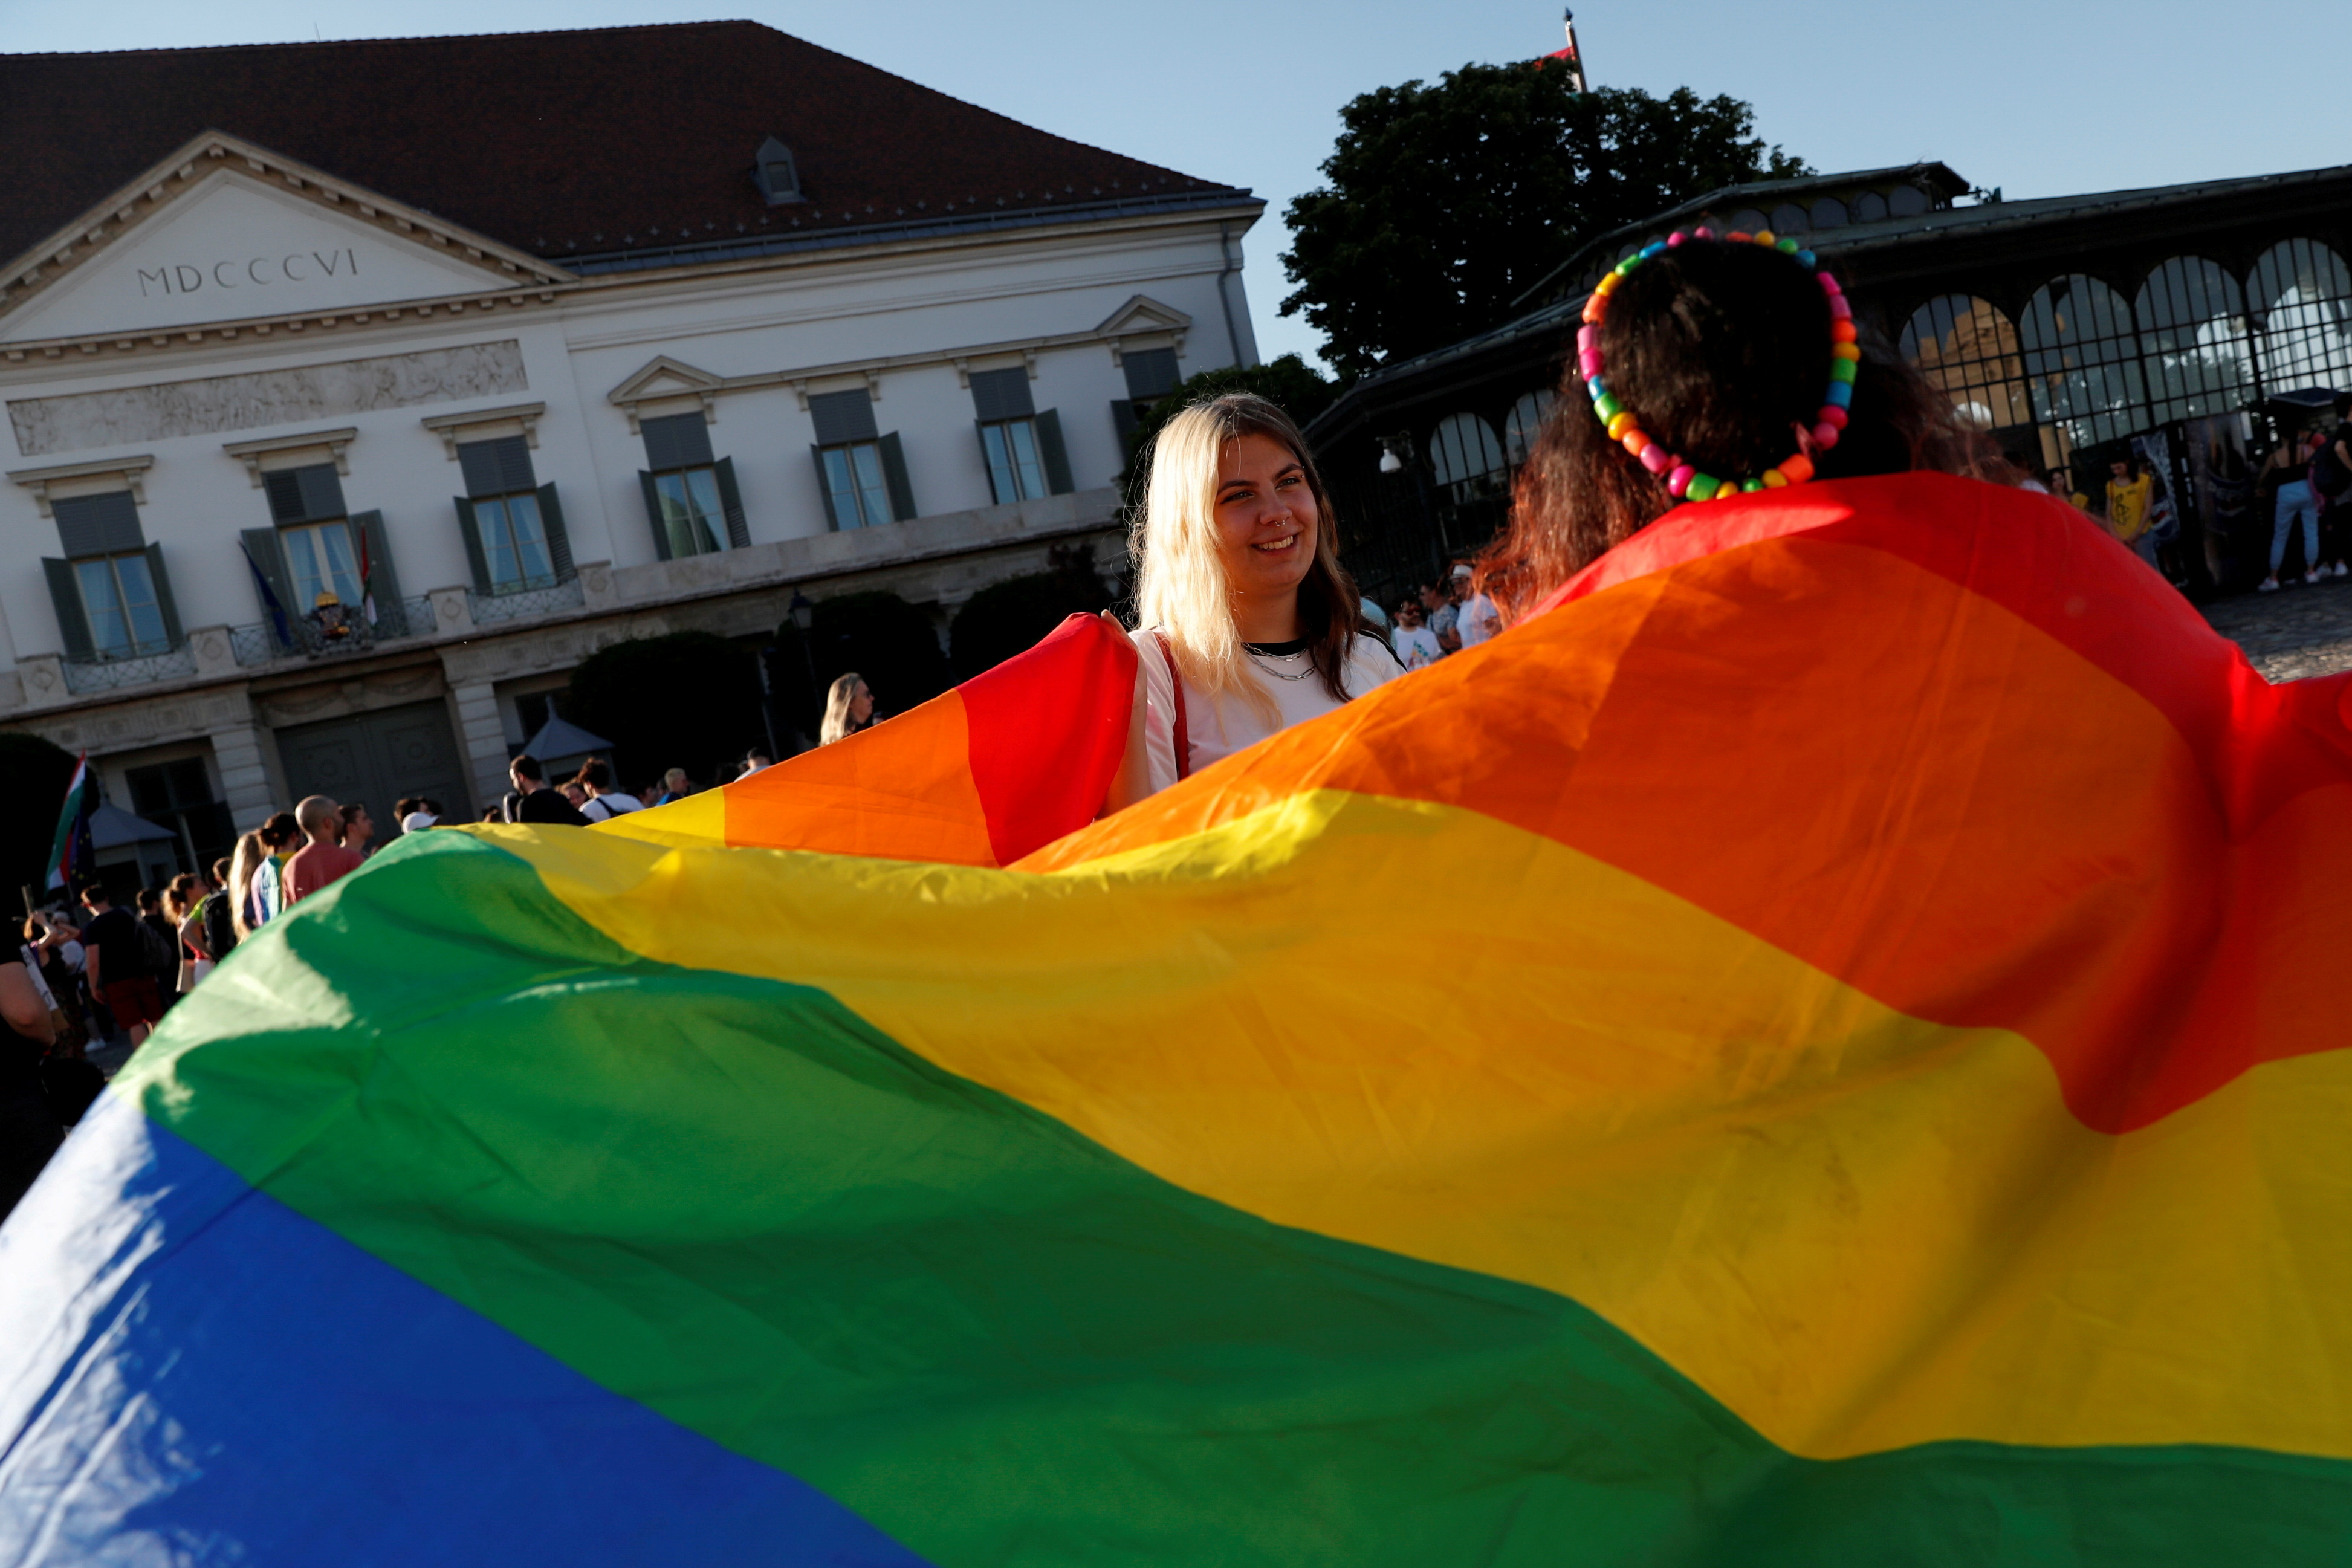 Demonstrators attend a protest against a law that bans LGBTQ content in schools and media at the Presidential Palace in Budapest, Hungary, June 16, 2021. REUTERS/Bernadett Szabo/File Photo